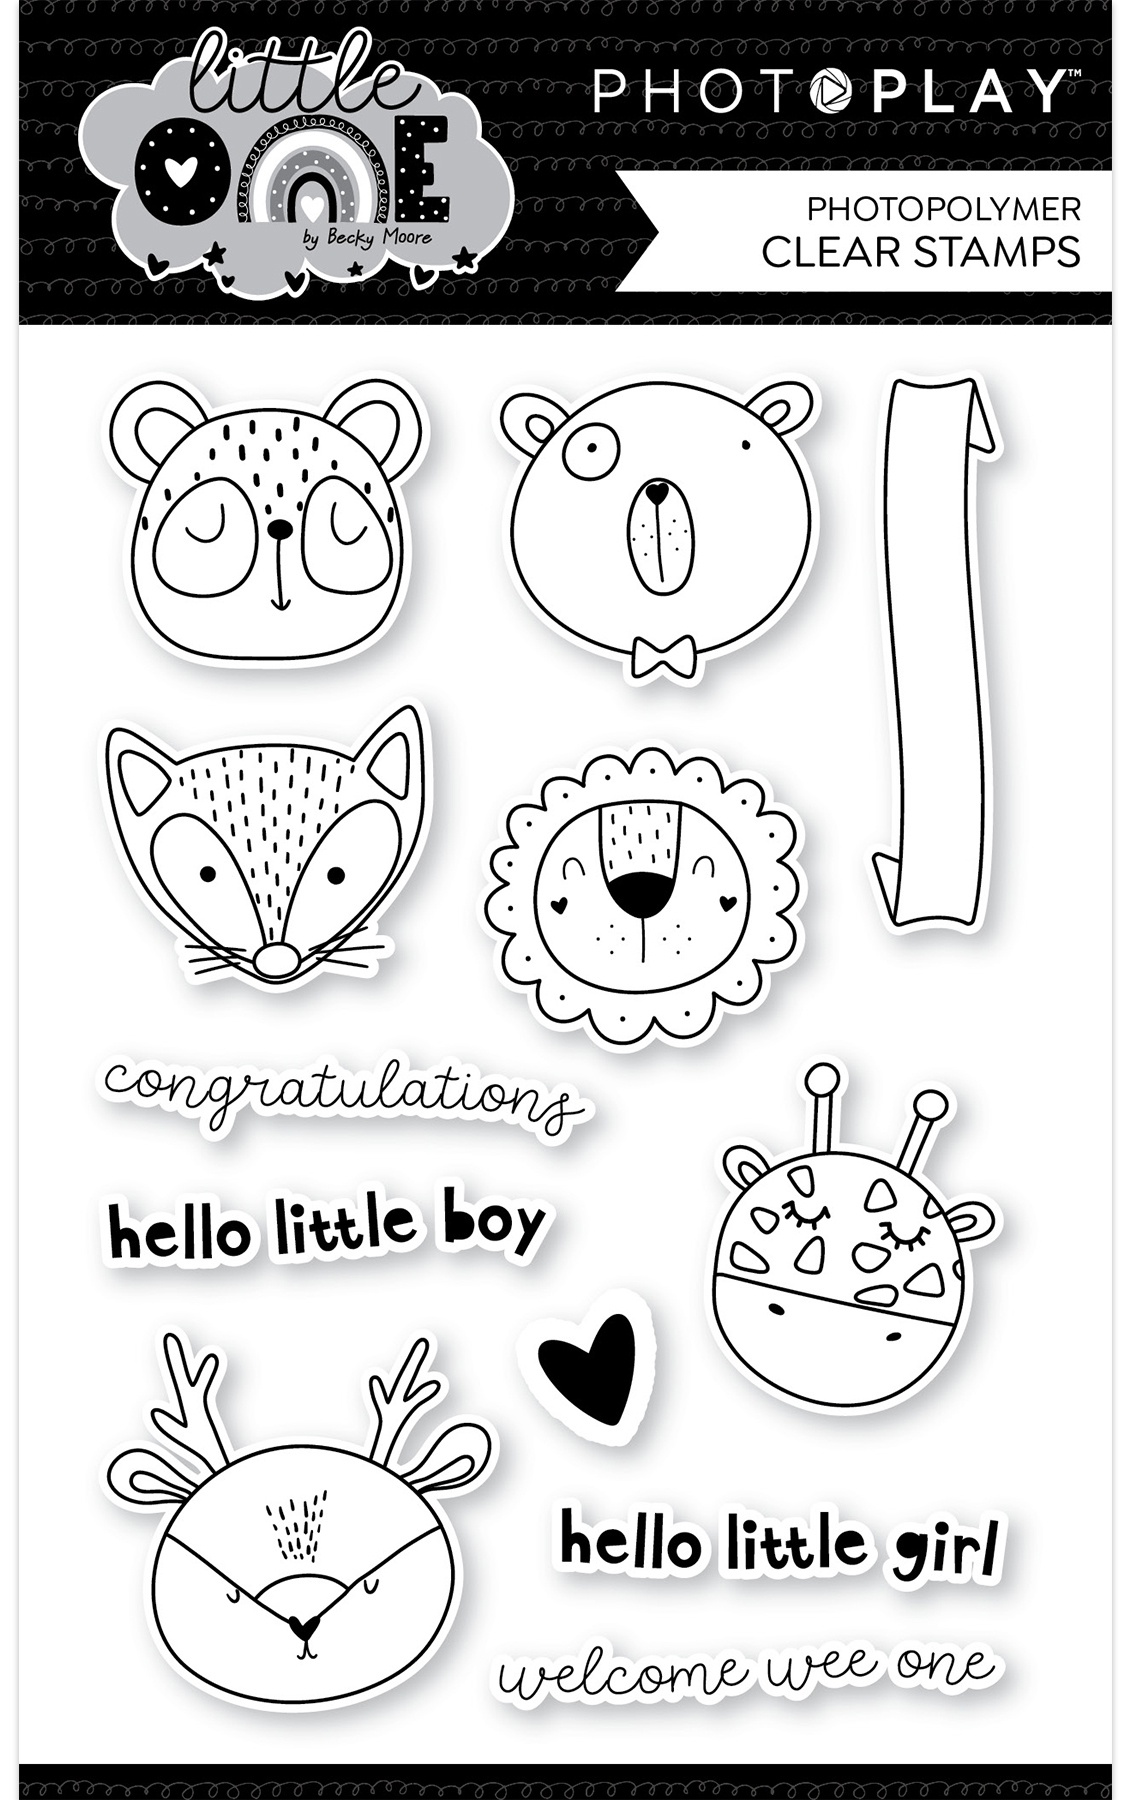 PhotoPlay - Little One - Animals Stamp Set